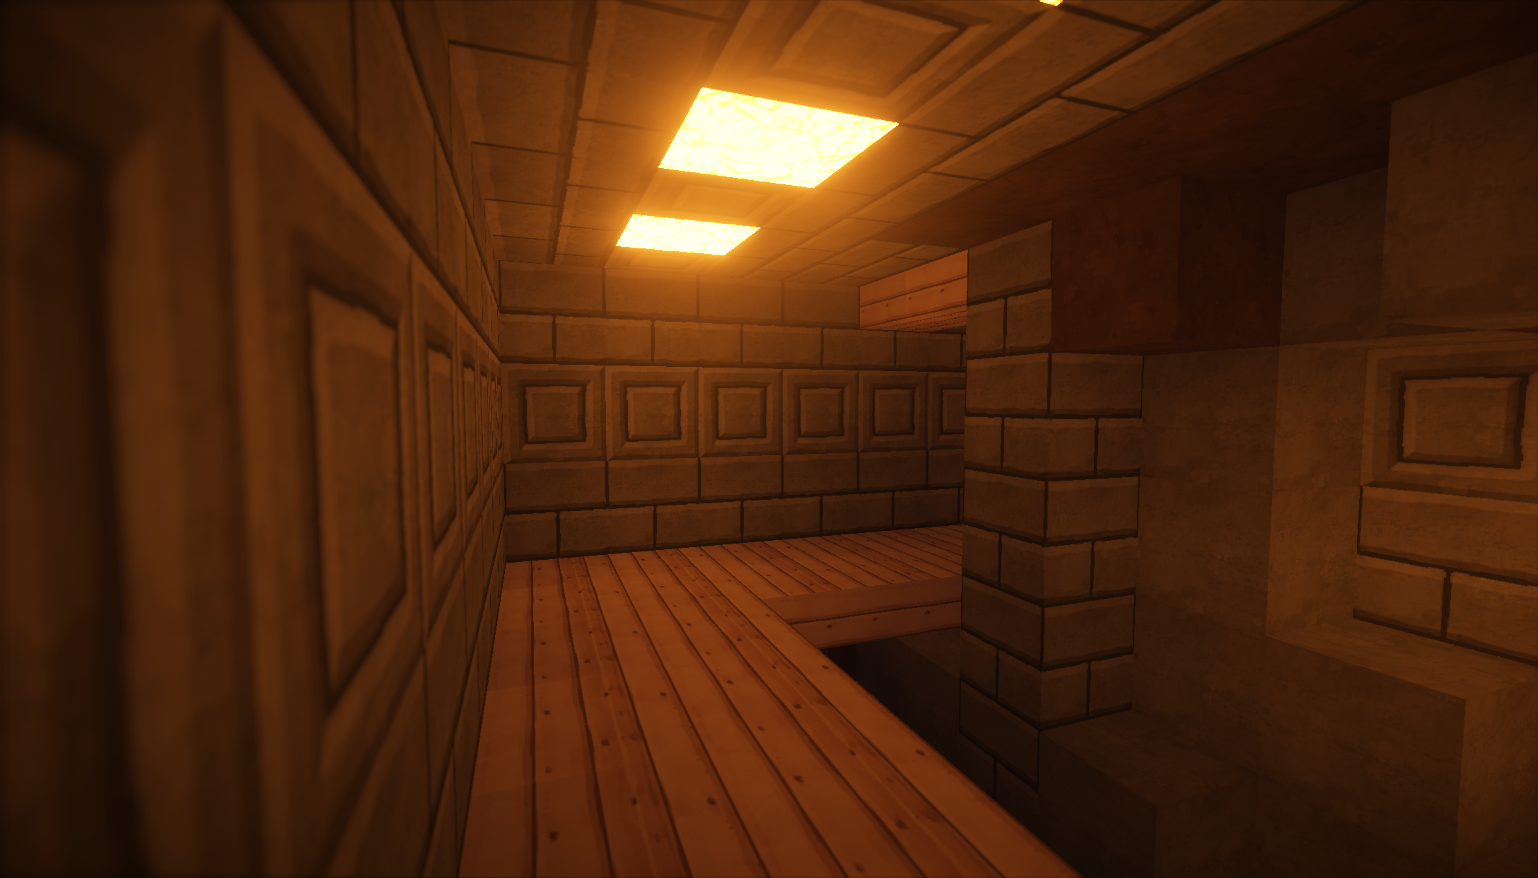 Entrance to secret base with Shaders Mod